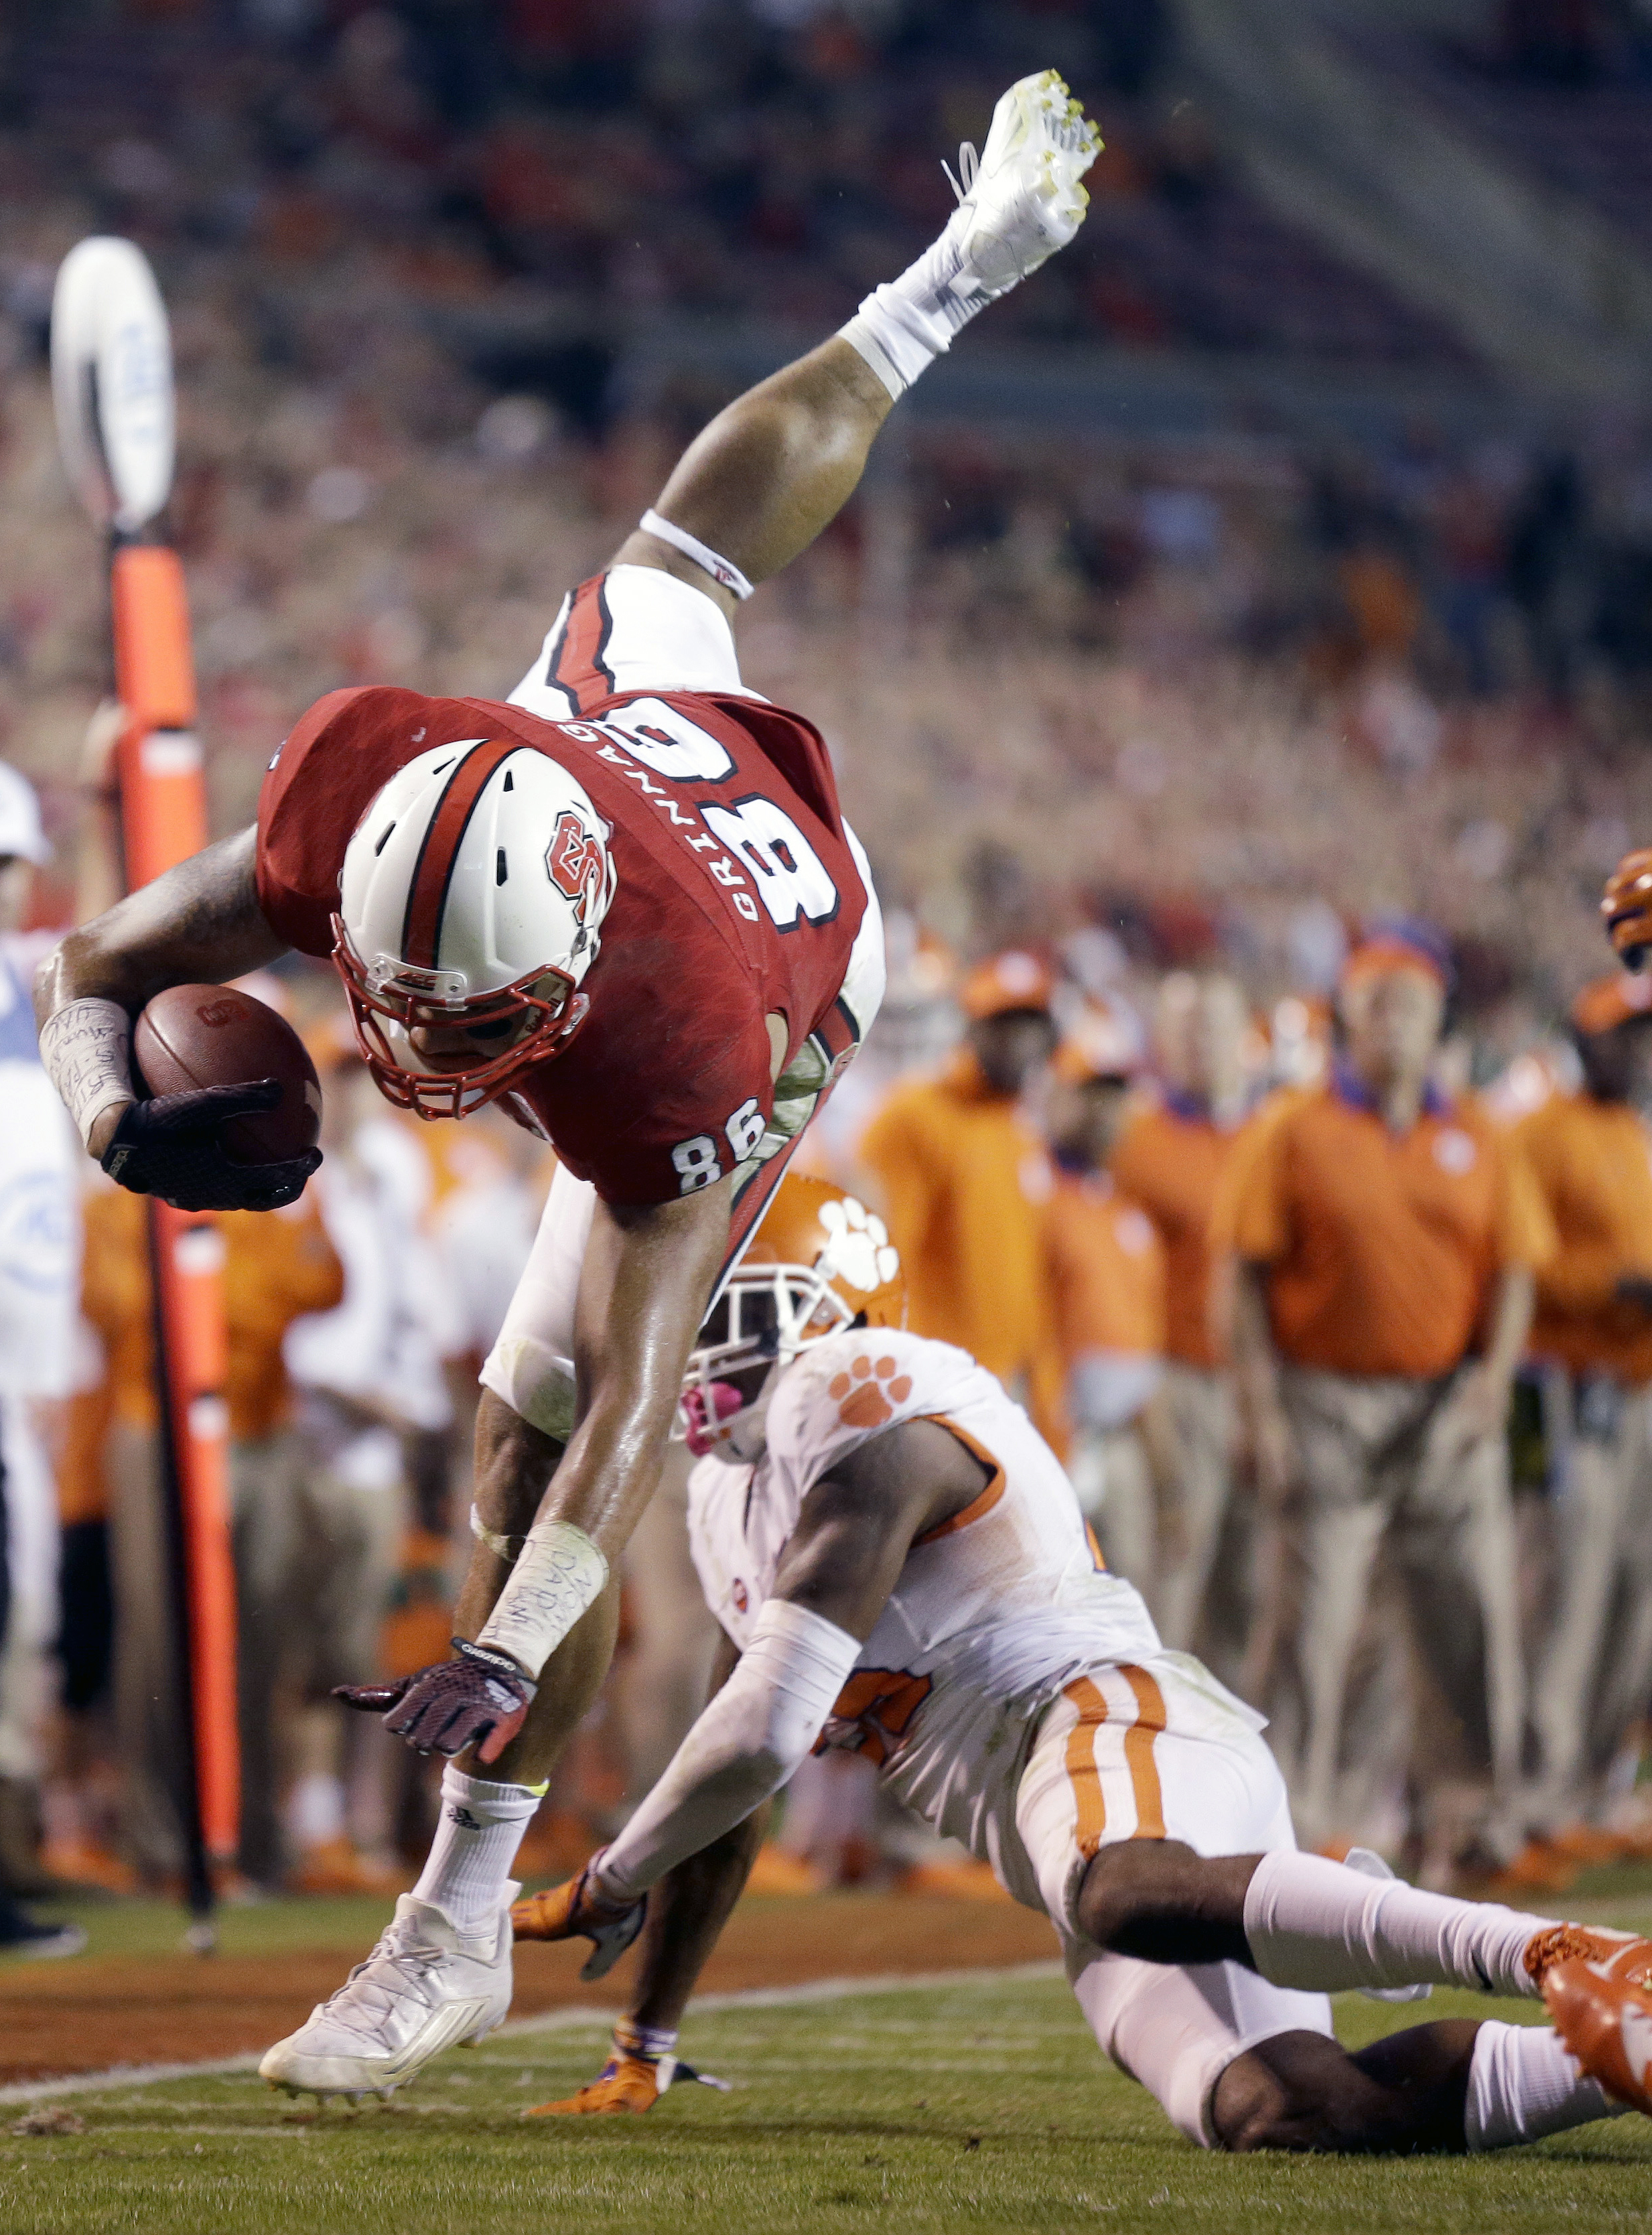 Clemson's Cordrea Tankersley, right, upends North Carolina State's David J. Grinnage (86) during the second half of an NCAA college football game in Raleigh, N.C., Saturday, Oct. 31, 2015. Clemson won 56-41. (AP Photo/Gerry Broome)